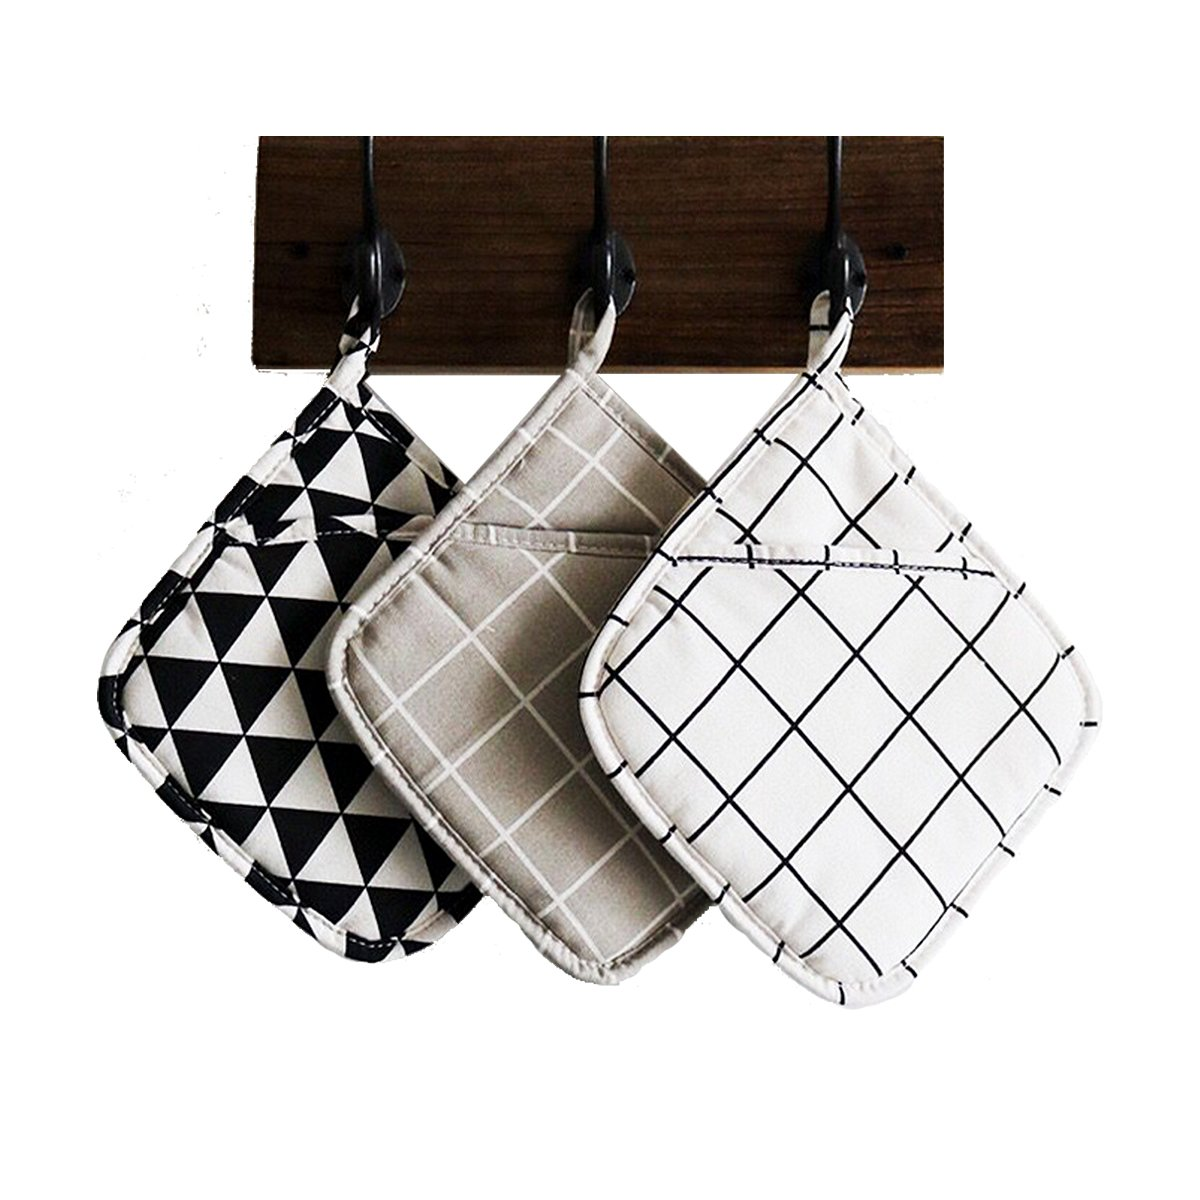 Cotton Pot Holders , Set of 3 Large Cloth Pot Holders , Oven Mitts Set , Machine Washable and Durable Heat Resistant Pocket Mitts for Kitchen (Square , 8.5'')